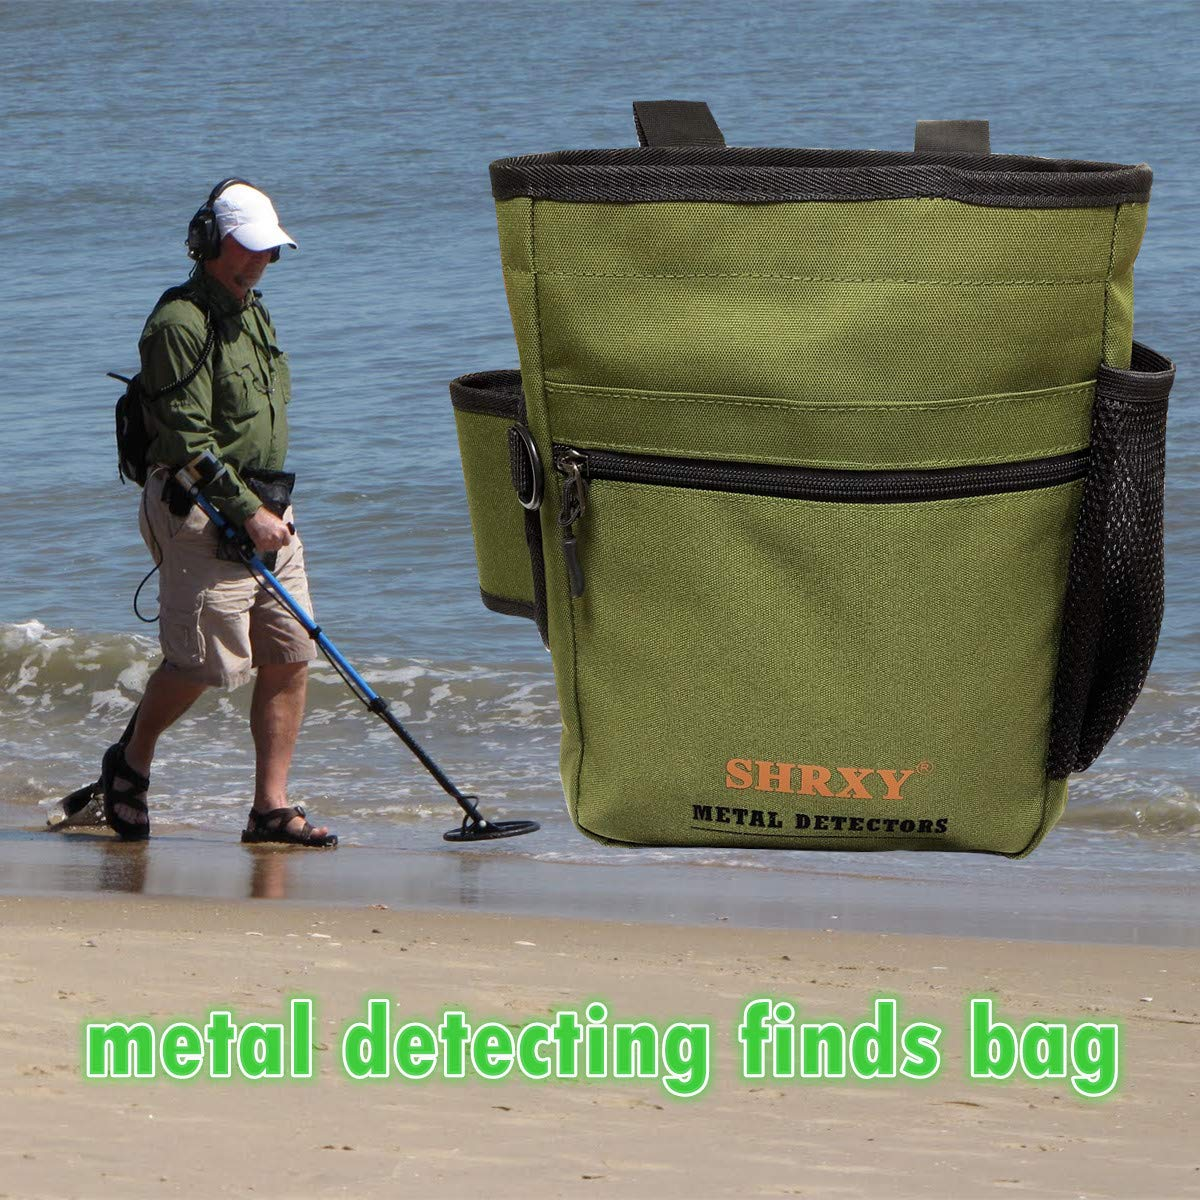 shrxy Metal Detecting Finds Bag Waist Digger Pouch Tools Bag for PinPointer Garrett Detector Xp ProPointer Accessories ... (Green) by shrxy